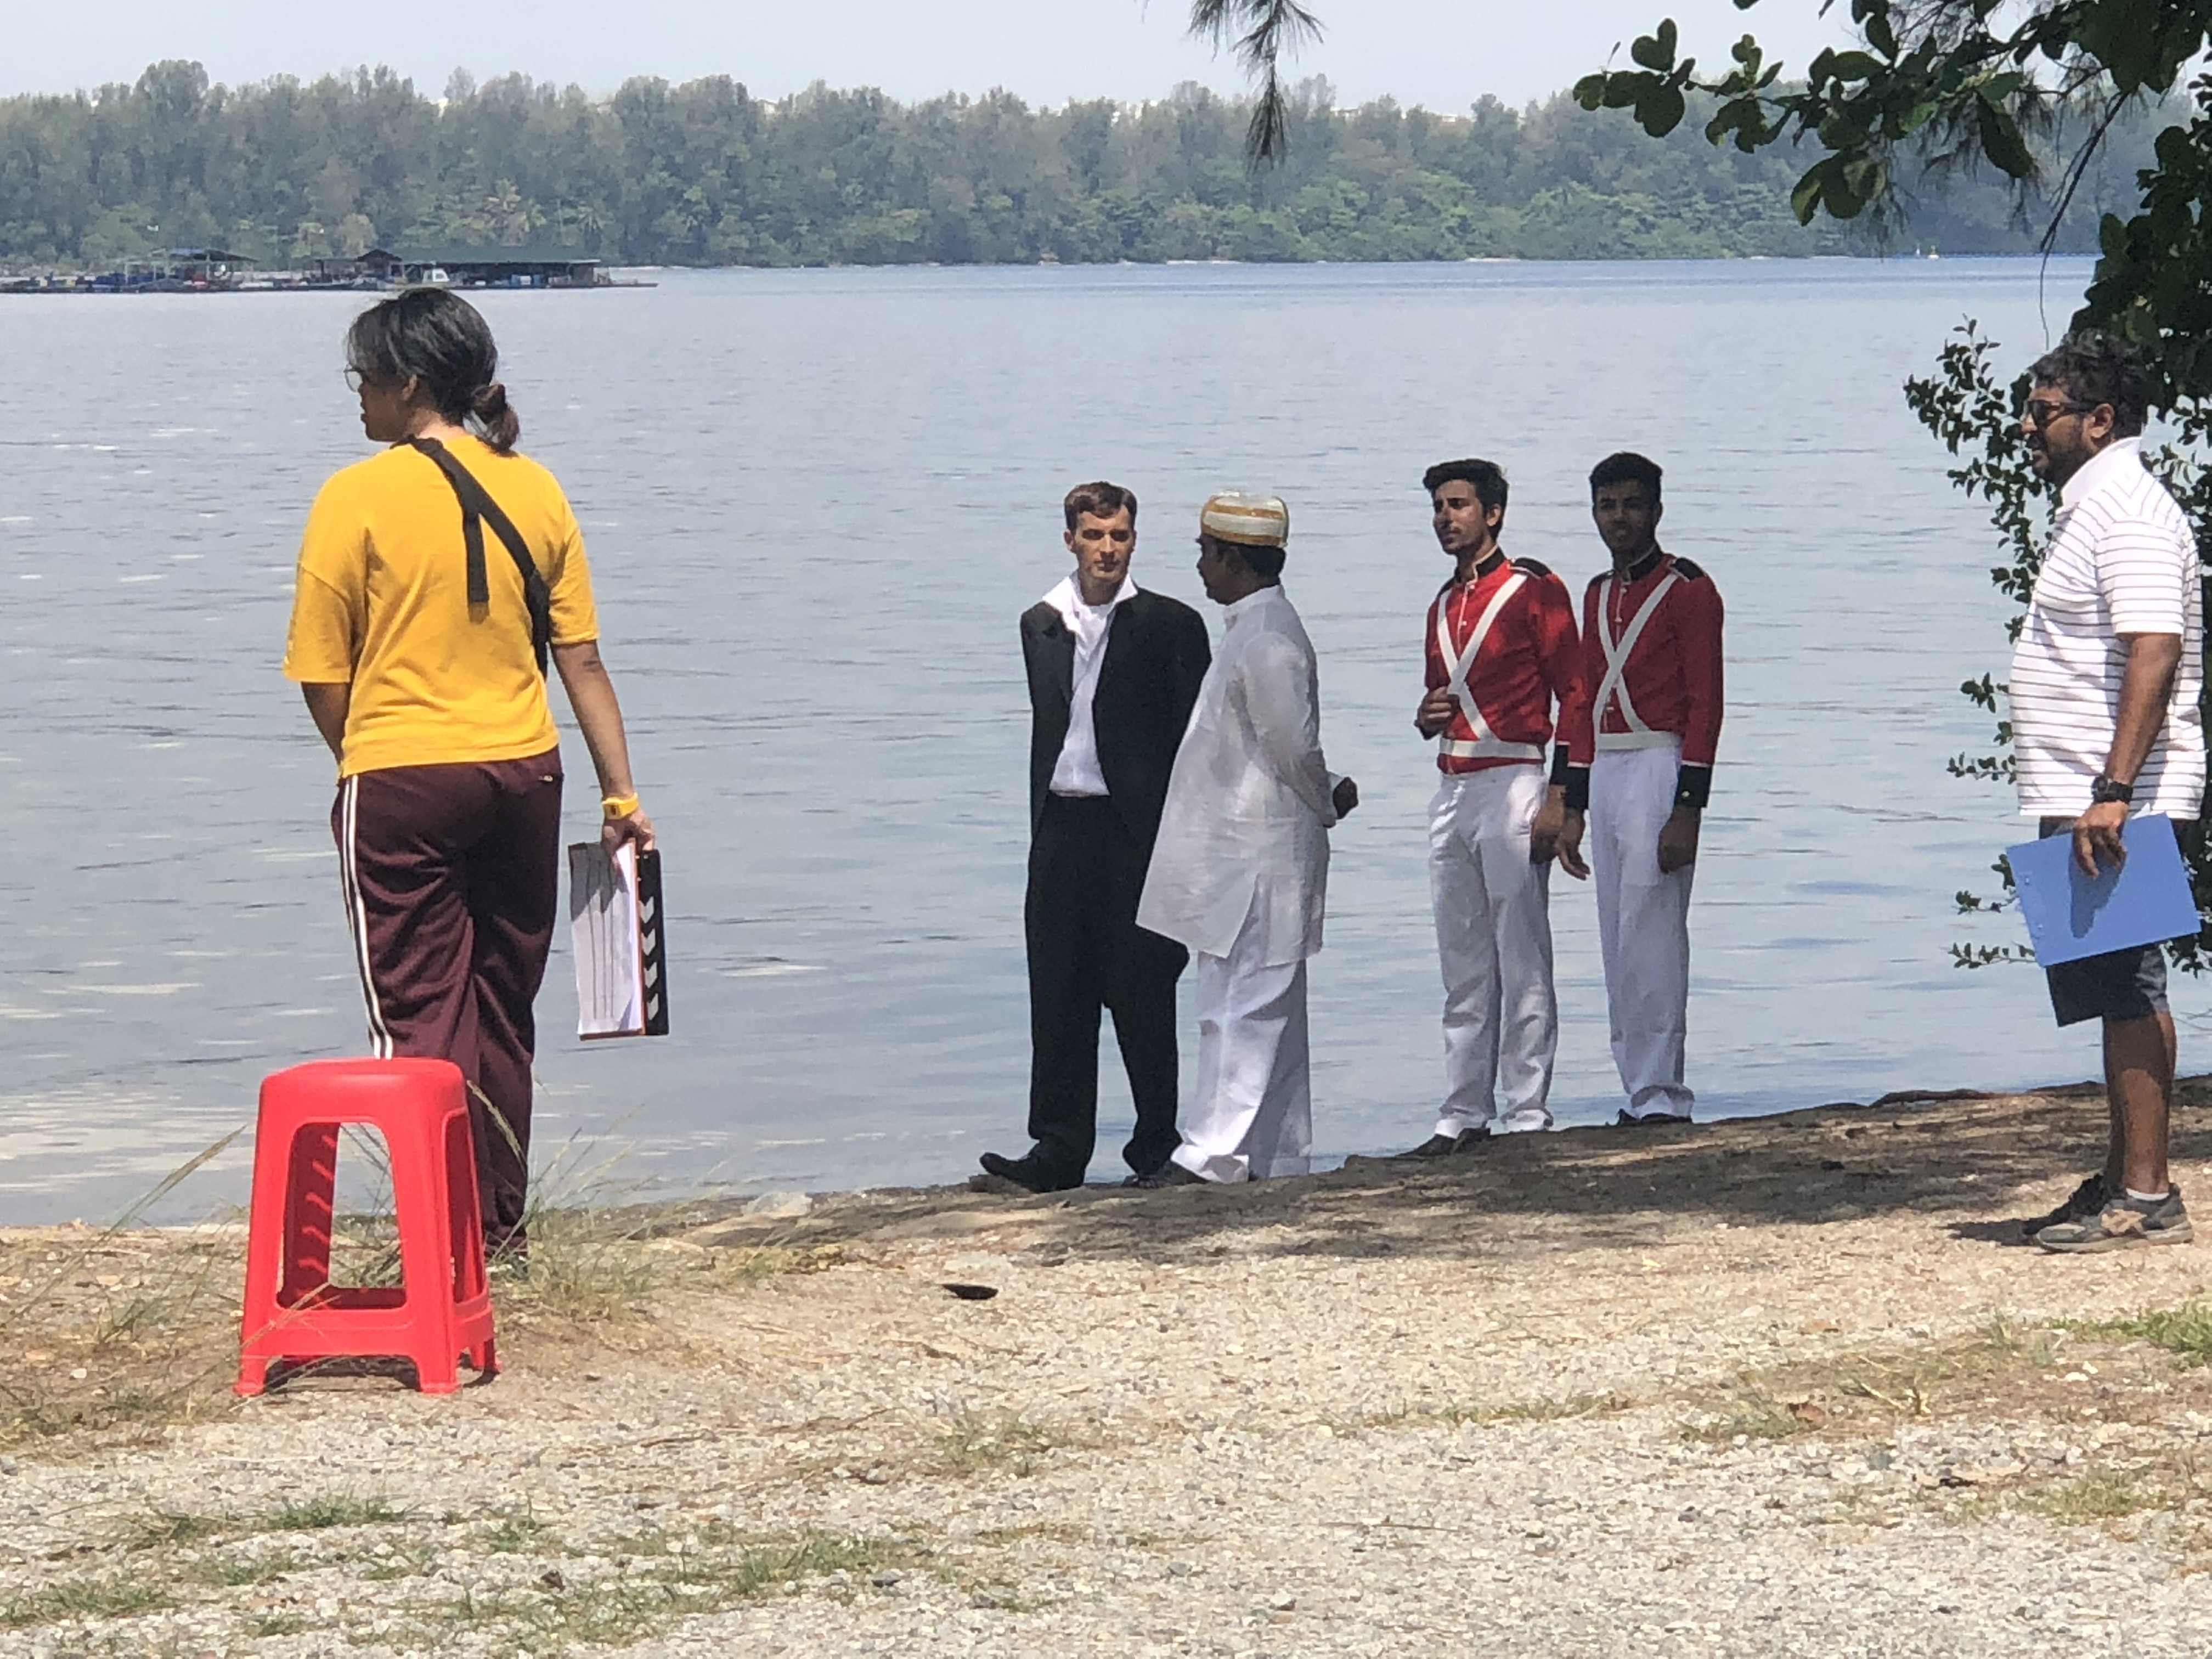 Shooting a scene with Sir Thomas Stamford Raffles (left) and Naraina Pillai (2nd from left) and some Sepoys. Apart from being a businessman and a close friend of Raffles', Pillai was also helping the latter in the British administration of Penang. Photo courtesy: VisualBeatz